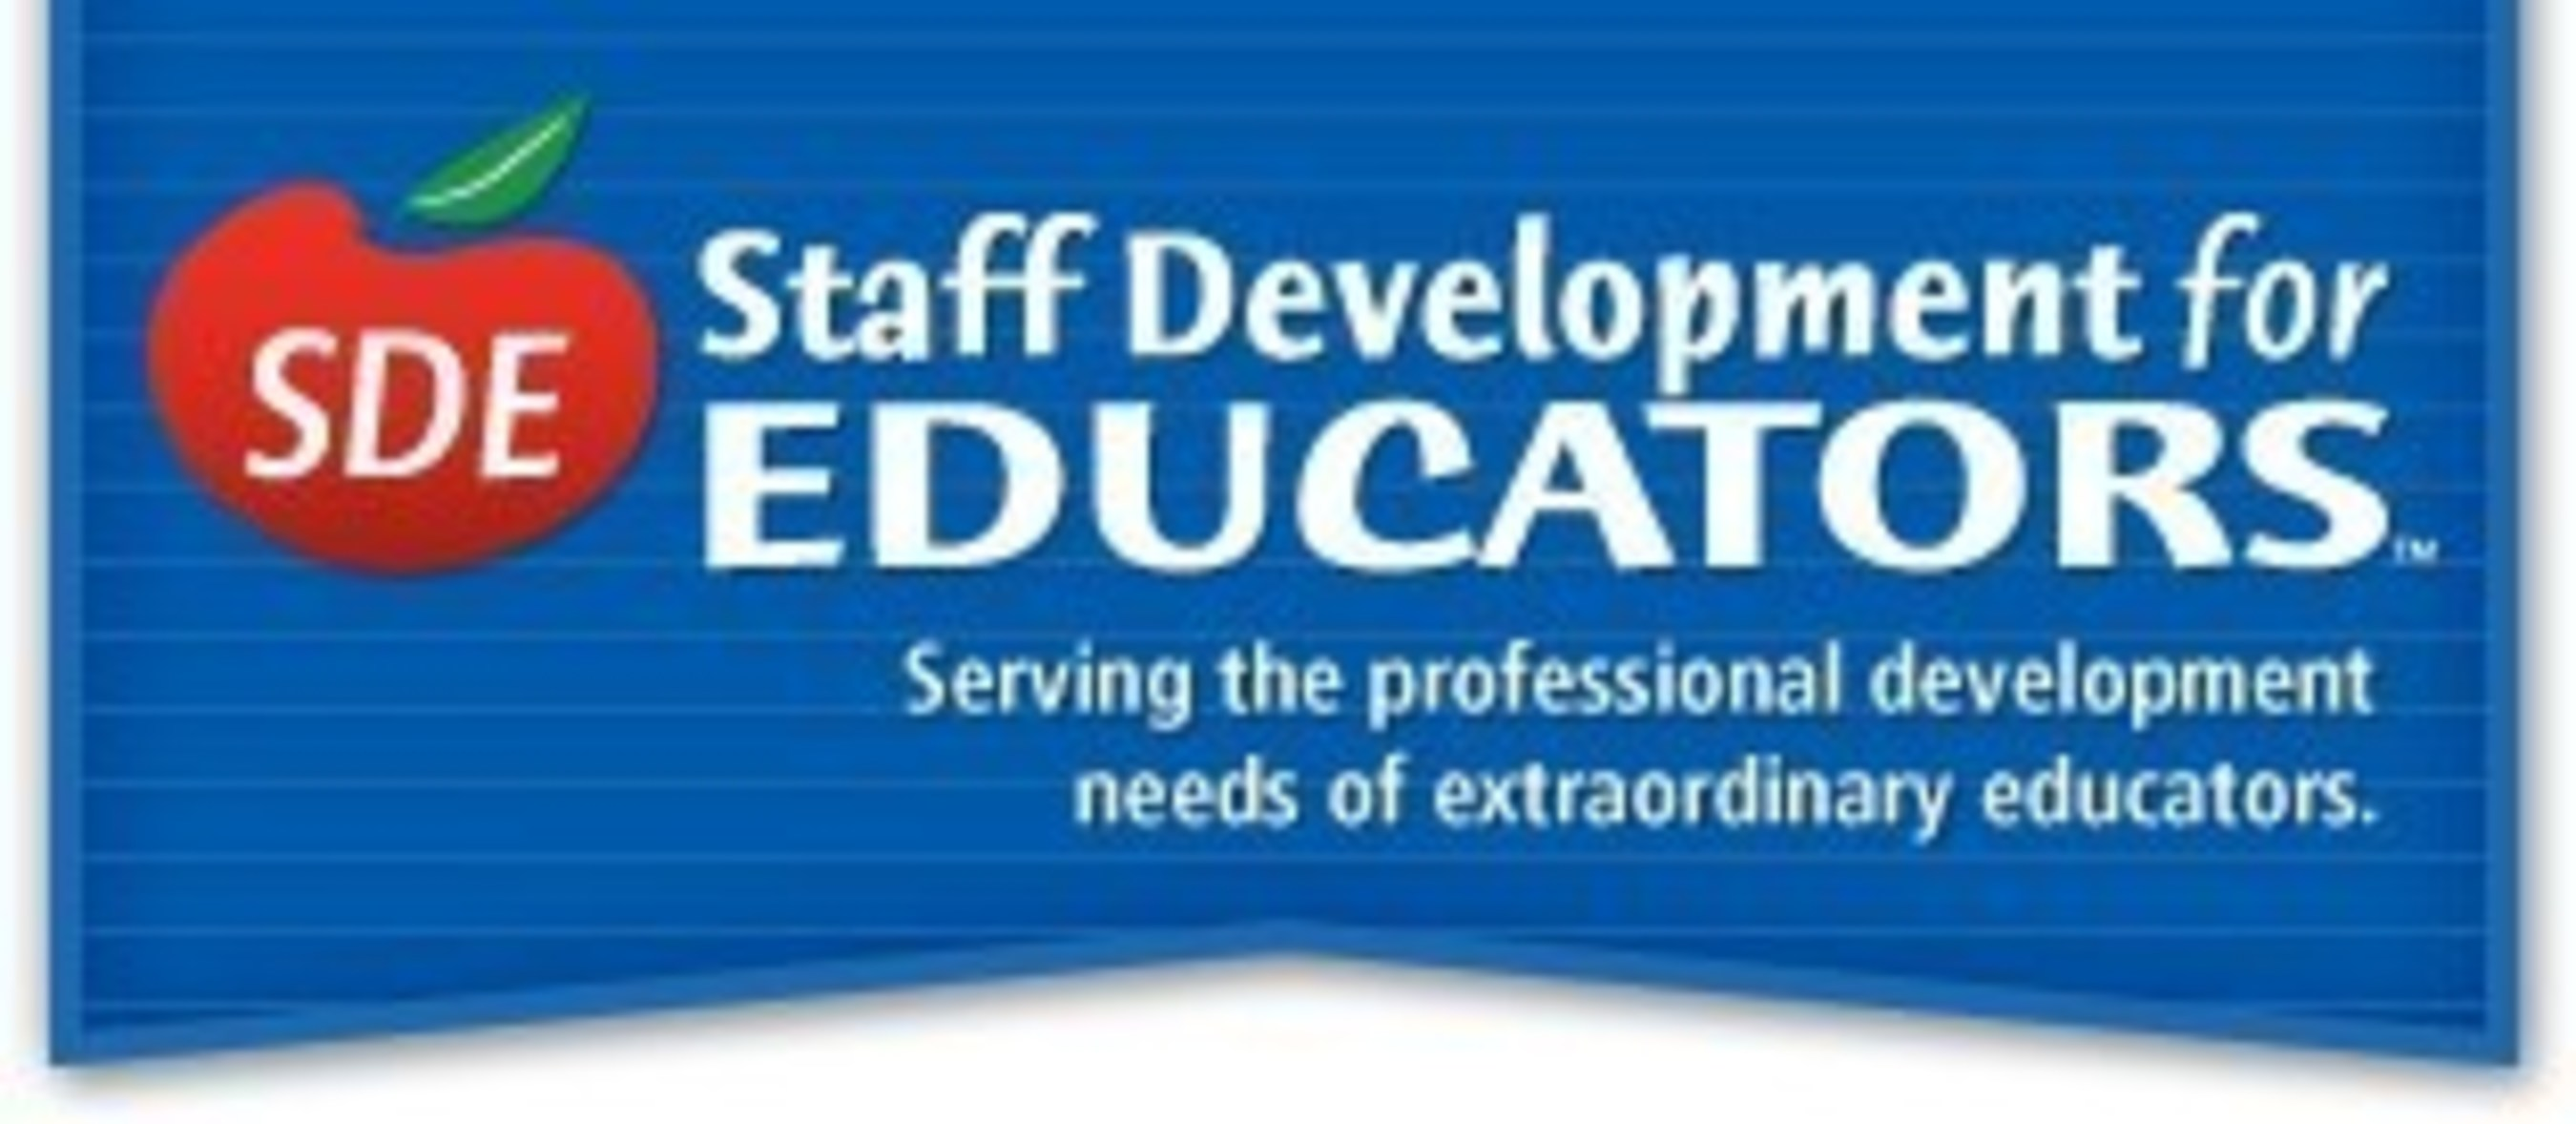 SDE Announces Lineup of National Conferences for Summer 2015